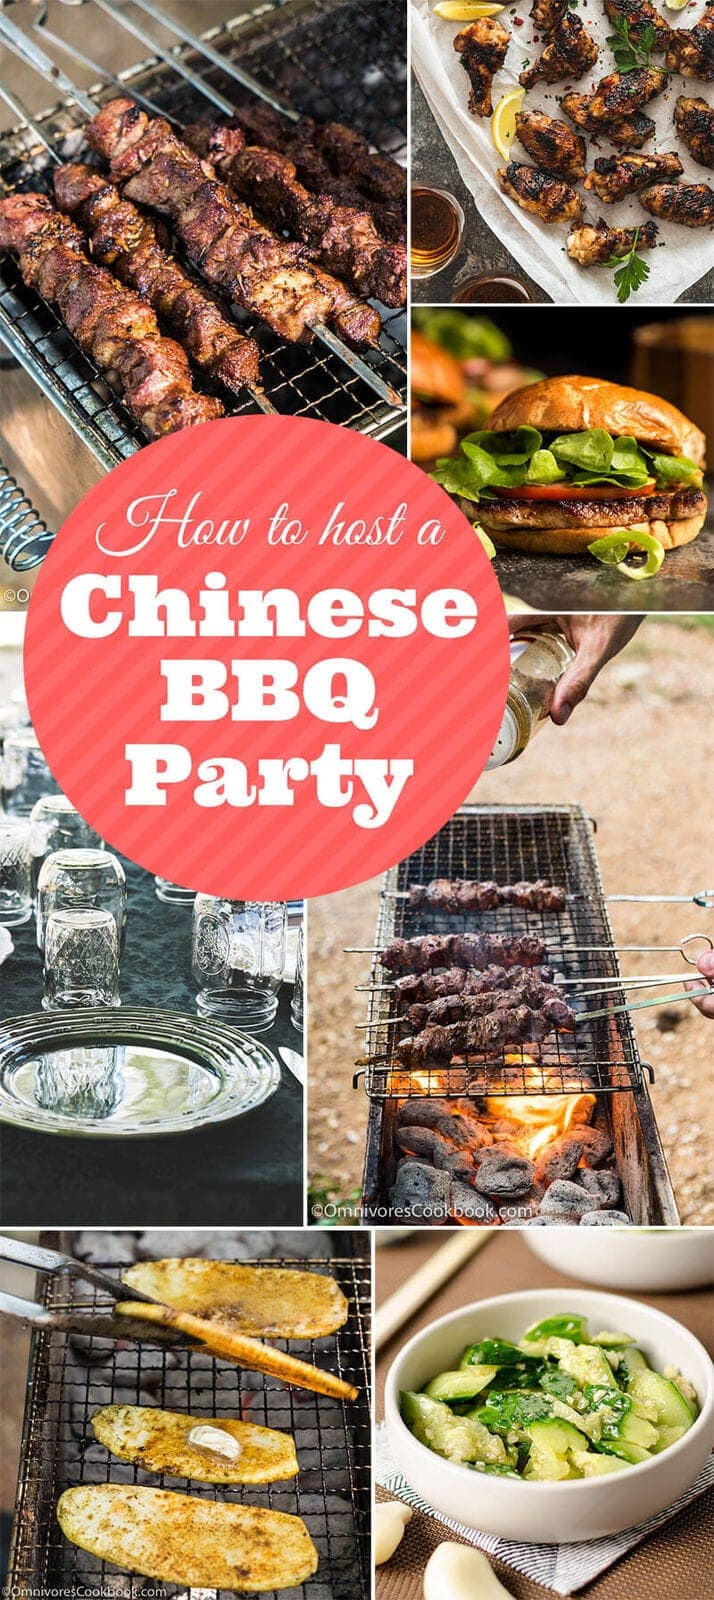 The ultimate guide to hosting a Chinese grilling and BBQ party in your backyard, with an introduction to a Chinese grill, tools, menu suggestions, workflow, and everything else!